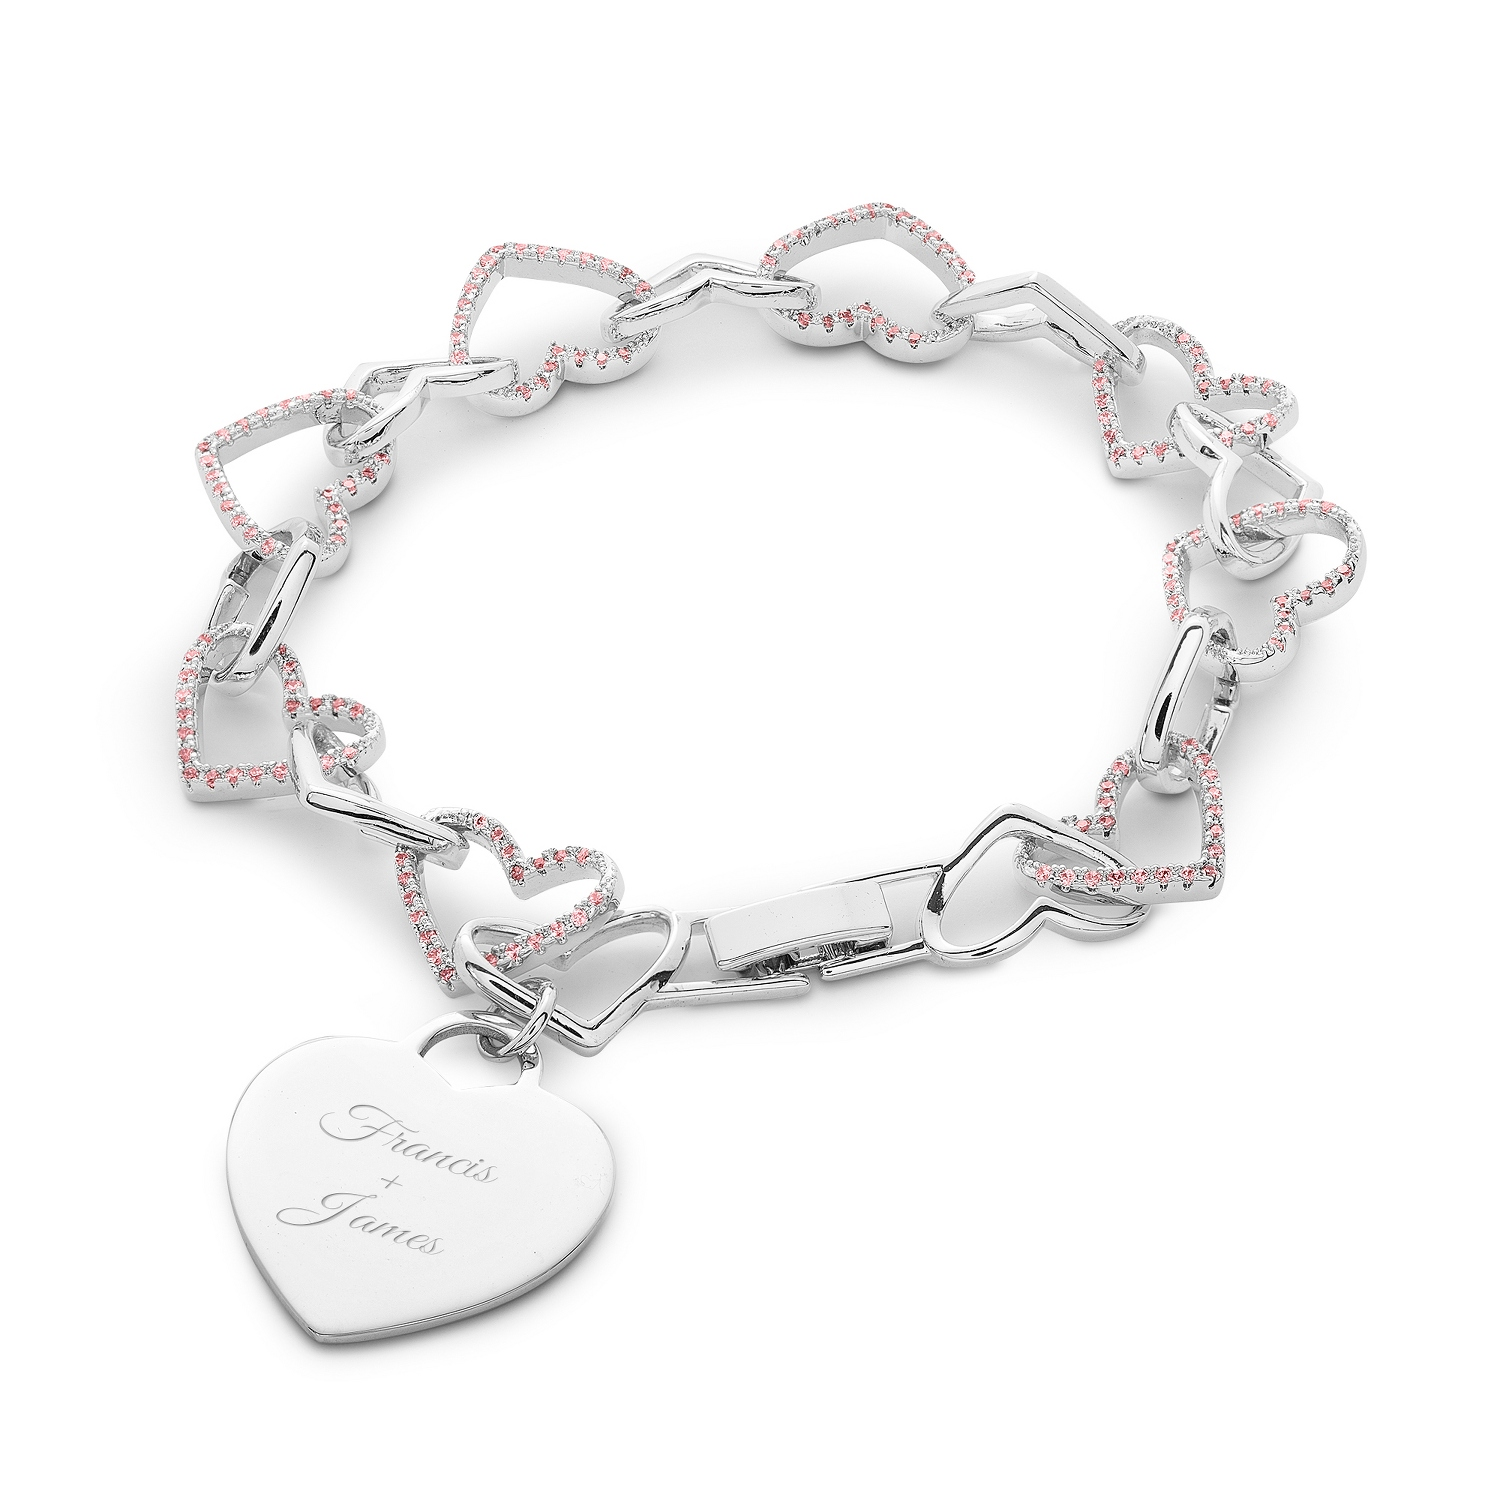 day gifts bling bracelet pbx charm pandora br heart bead silver pkwed cupid valentines wine fits wedding jewelry pink